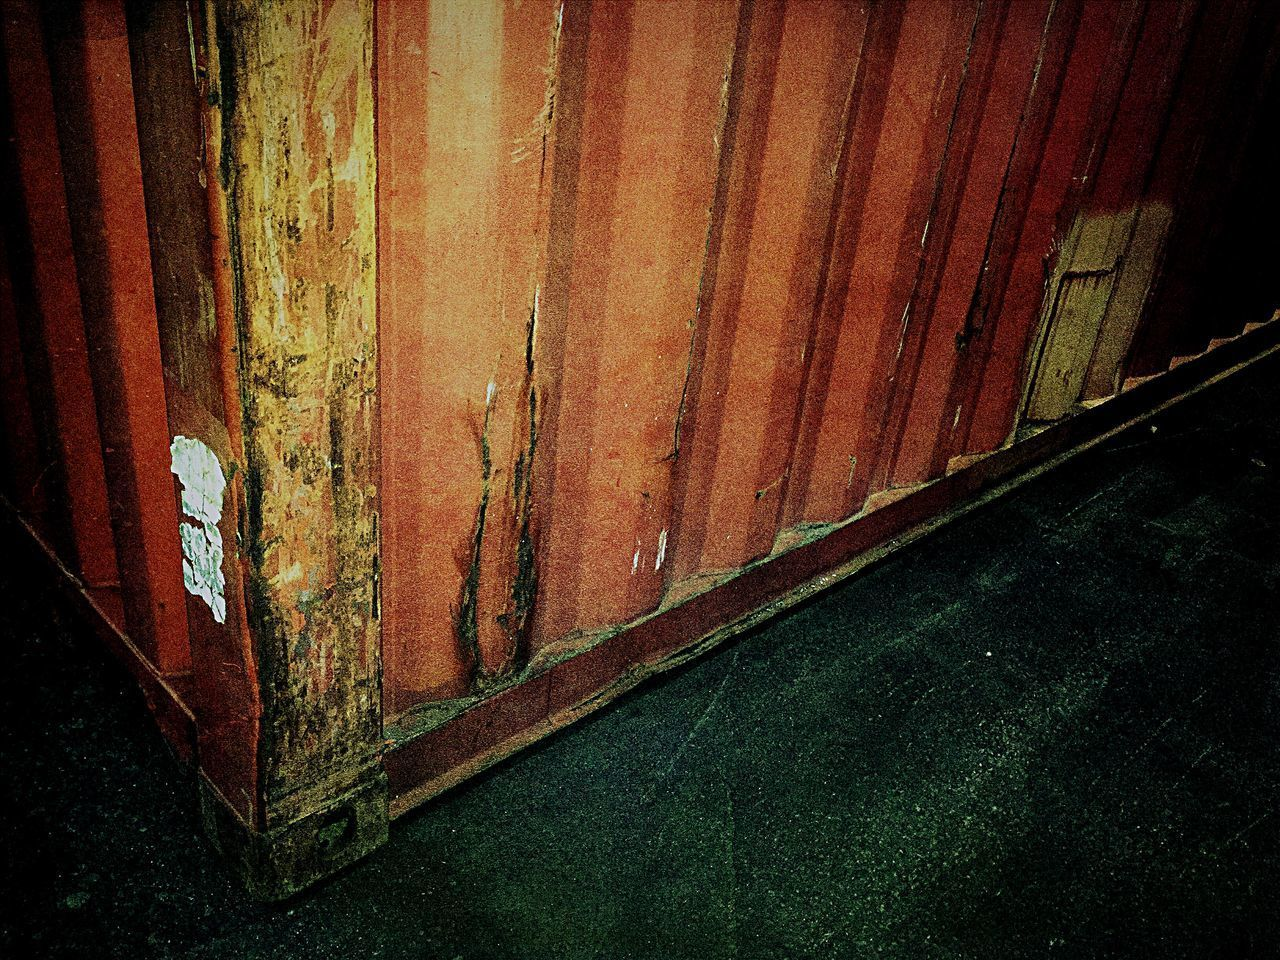 weathered, no people, indoors, rusty, wood - material, abandoned, metal, decline, deterioration, textured, pattern, damaged, old, day, built structure, run-down, architecture, close-up, wall - building feature, obsolete, iron